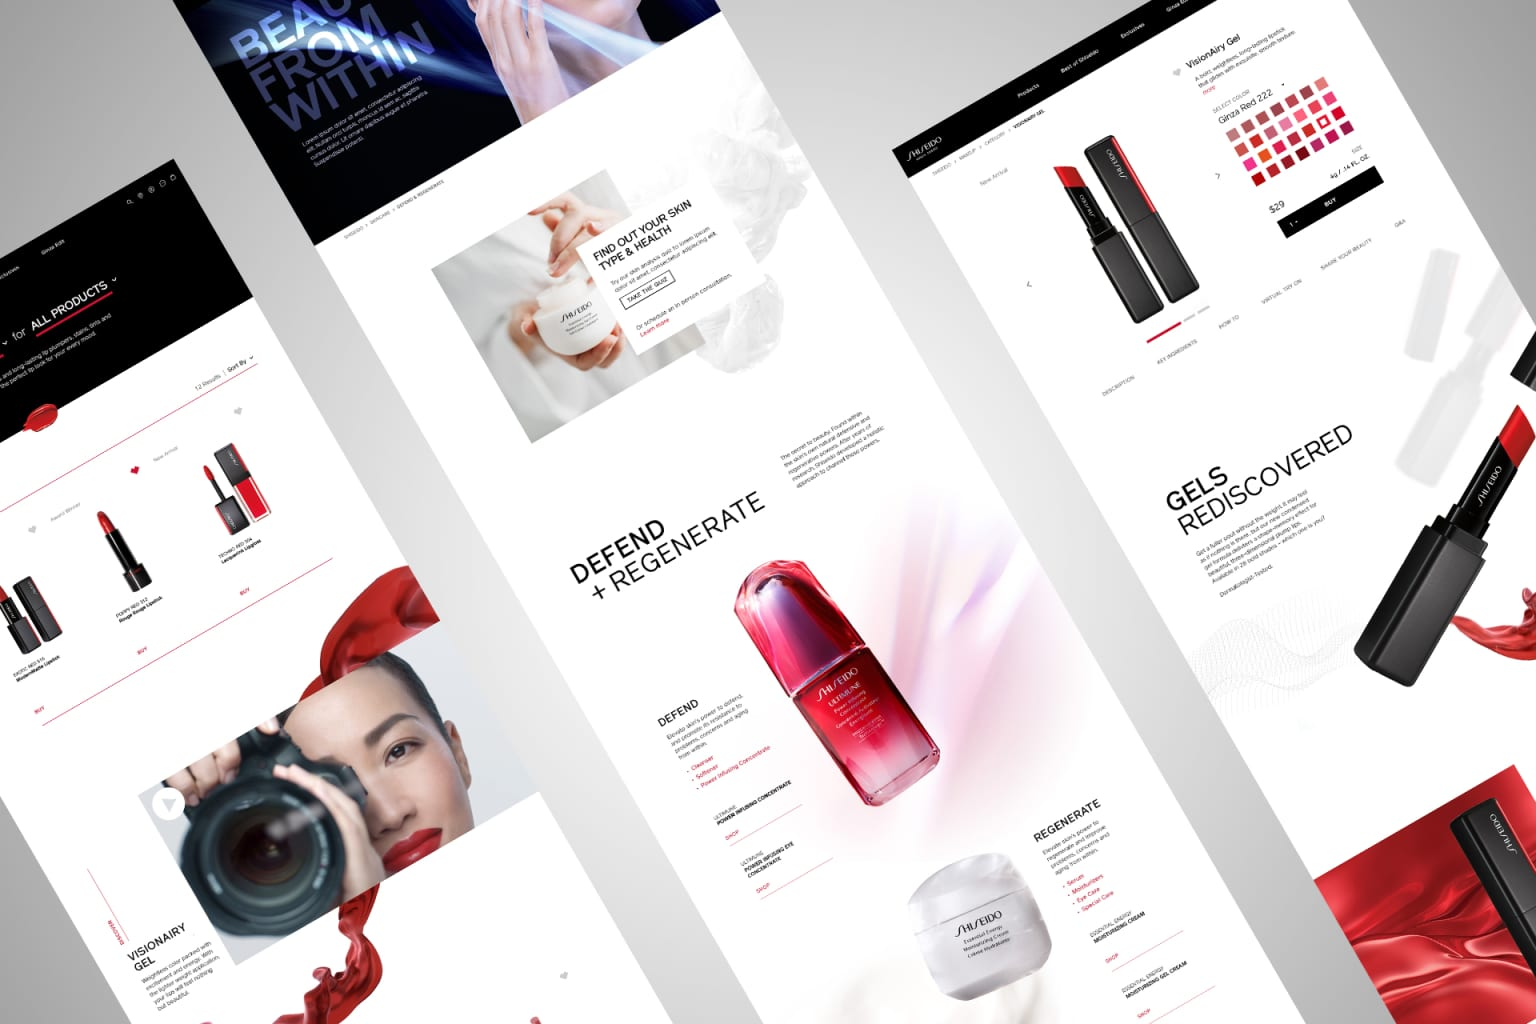 Shiseido Global Website Redesign